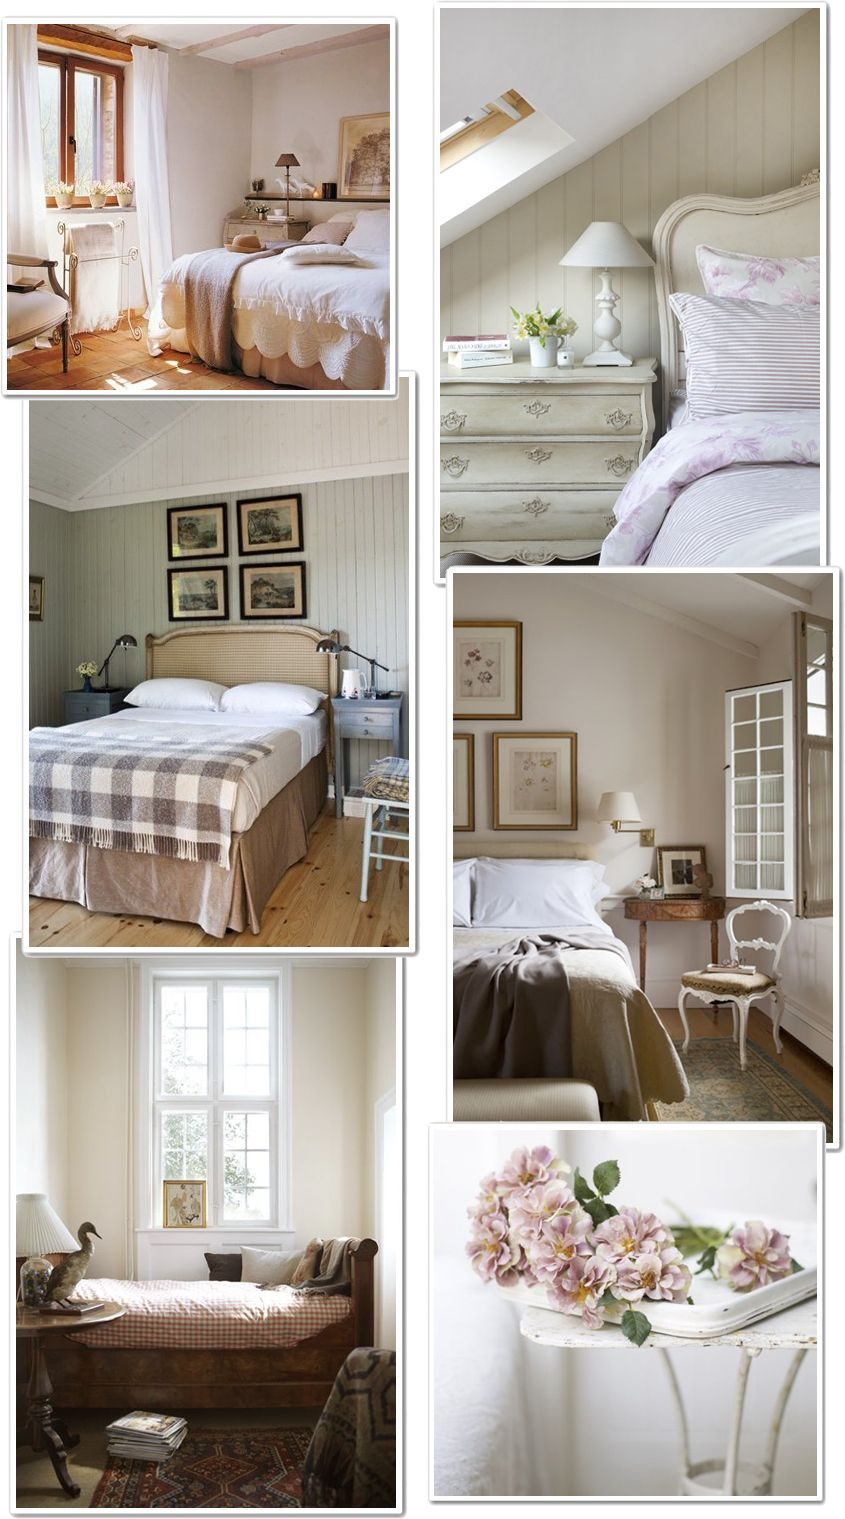 Shabby Chic Interiors: Camera Matrimoniale | Home~~~ Inside & Out ...